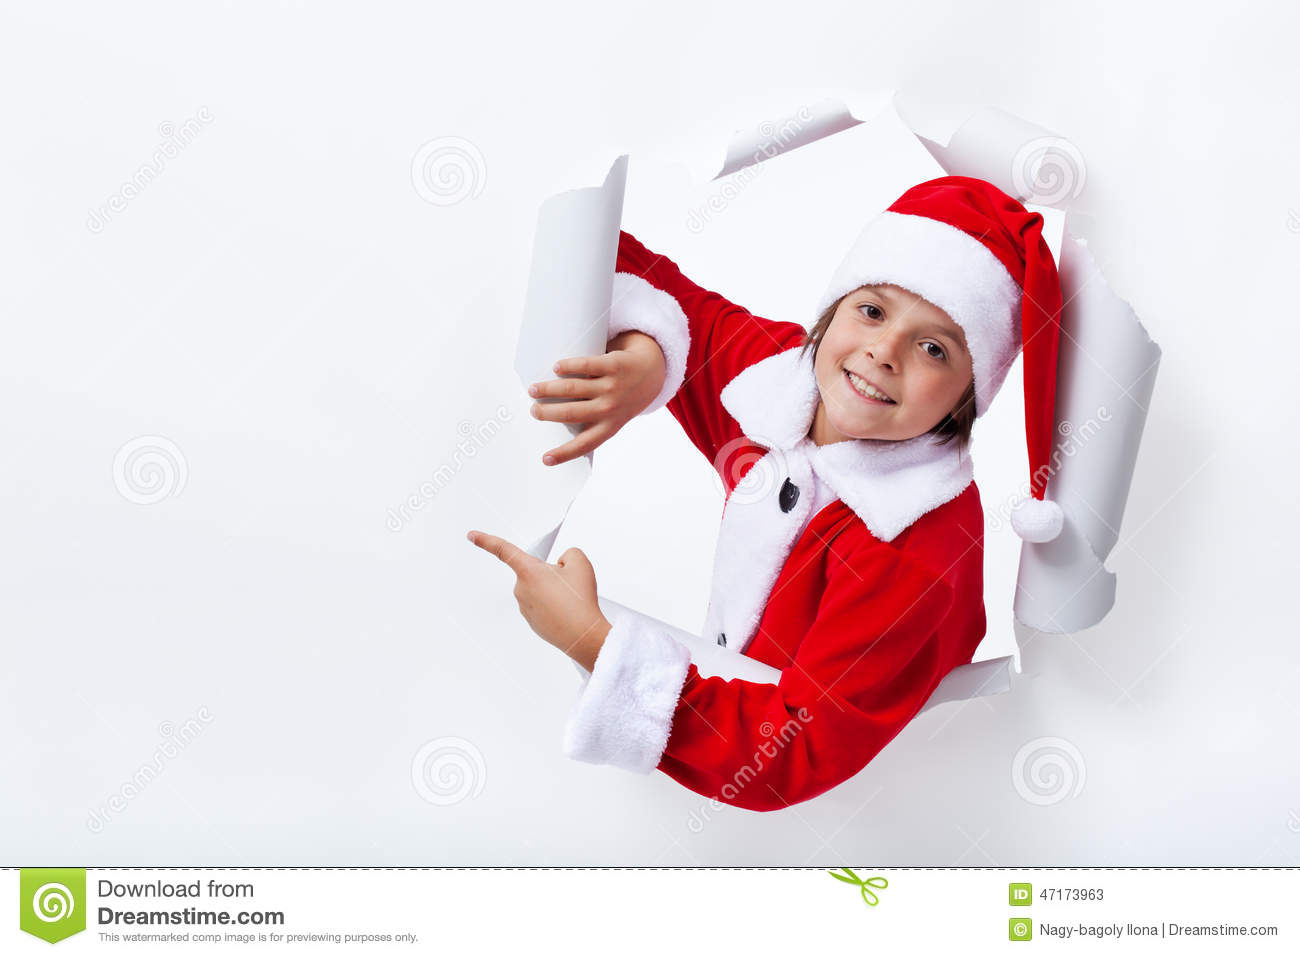 Claus costume boy pointing to copy space christmas advertising